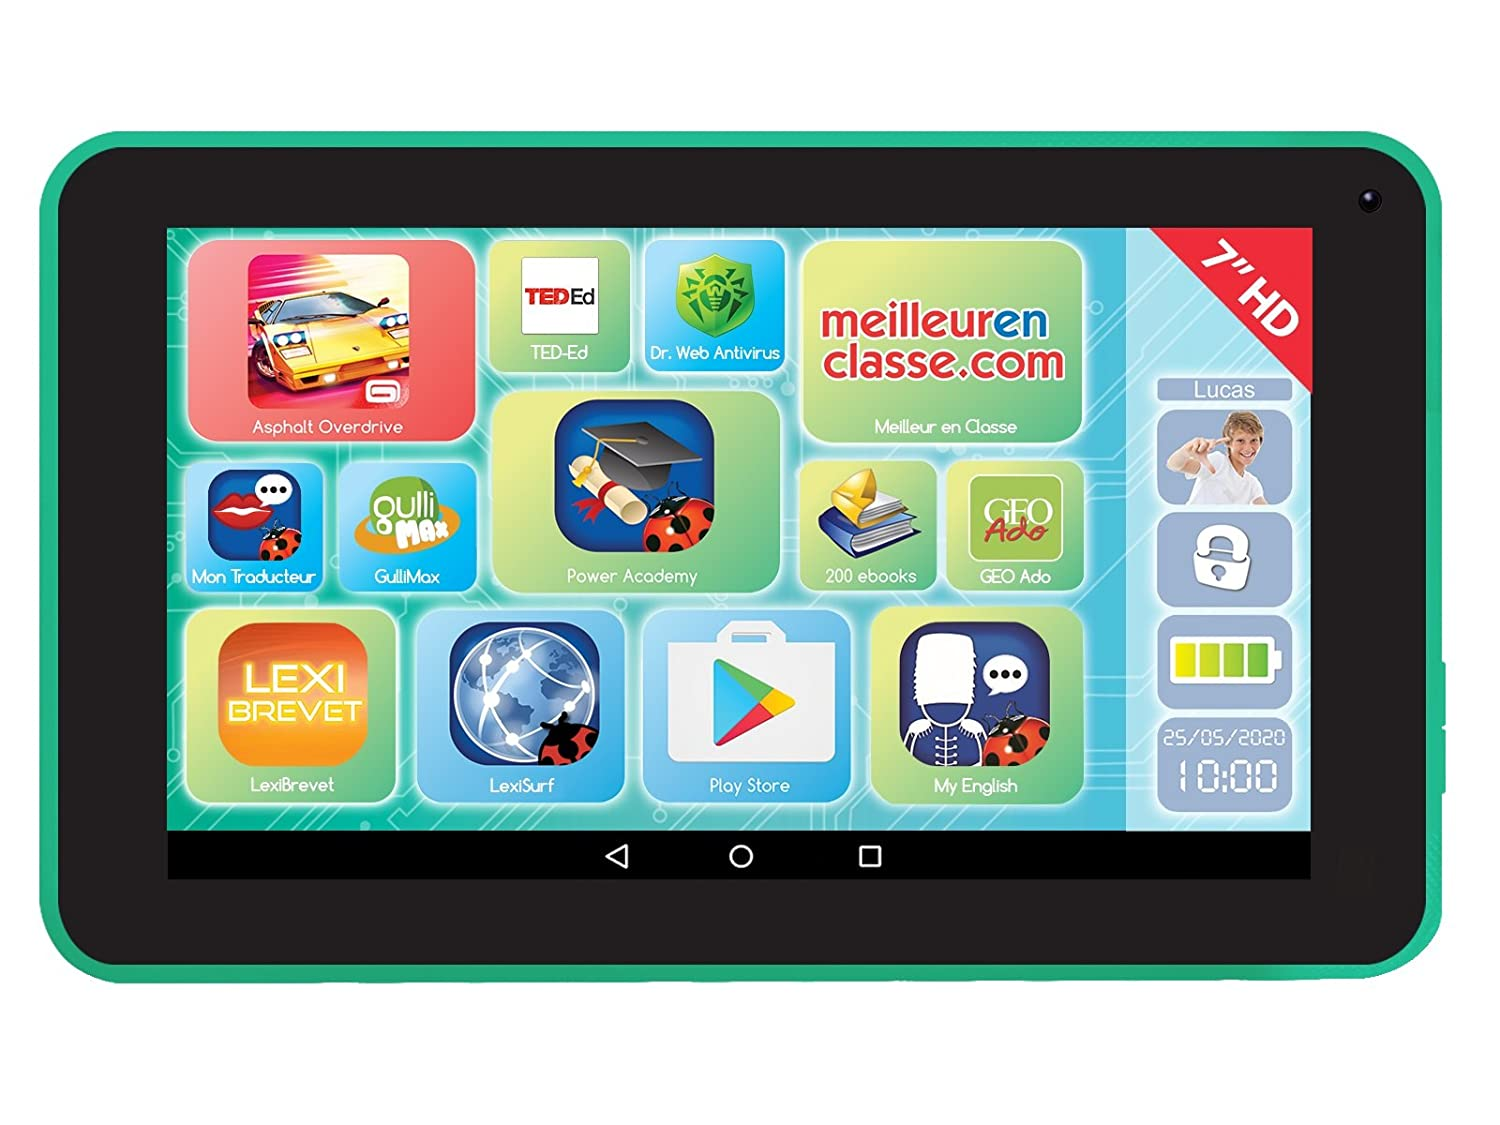 'lexitab 7 – Tablet Touchscreen Kinder, Inhalt lehrreich und Witziger Kontrolle Parental – Android, Wifi, Blautooth, Google Play, Youtube – Ref. mfc147